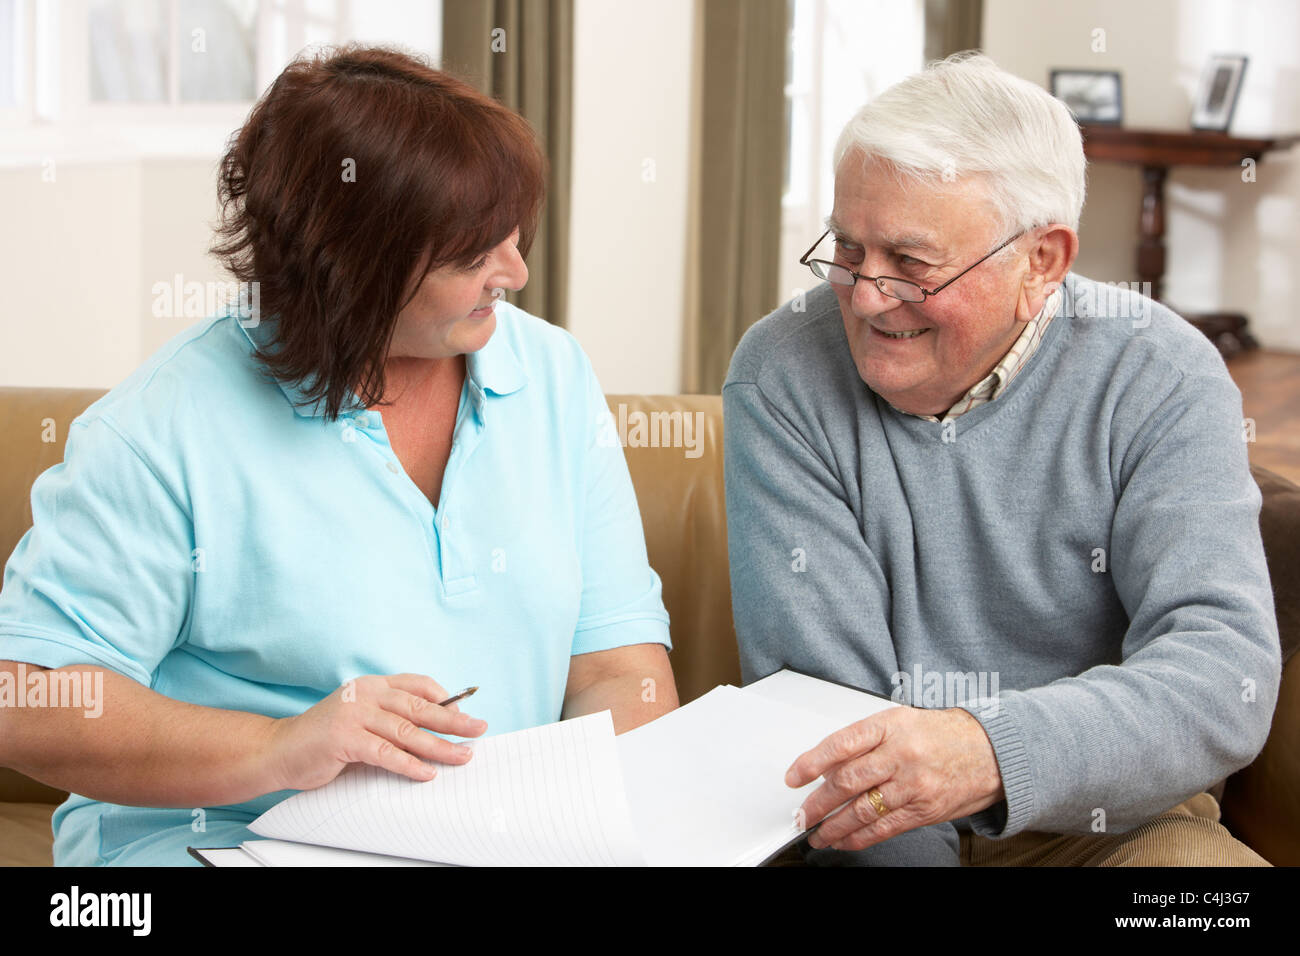 Senior Man In Discussion With Health Visitor At Home - Stock Image